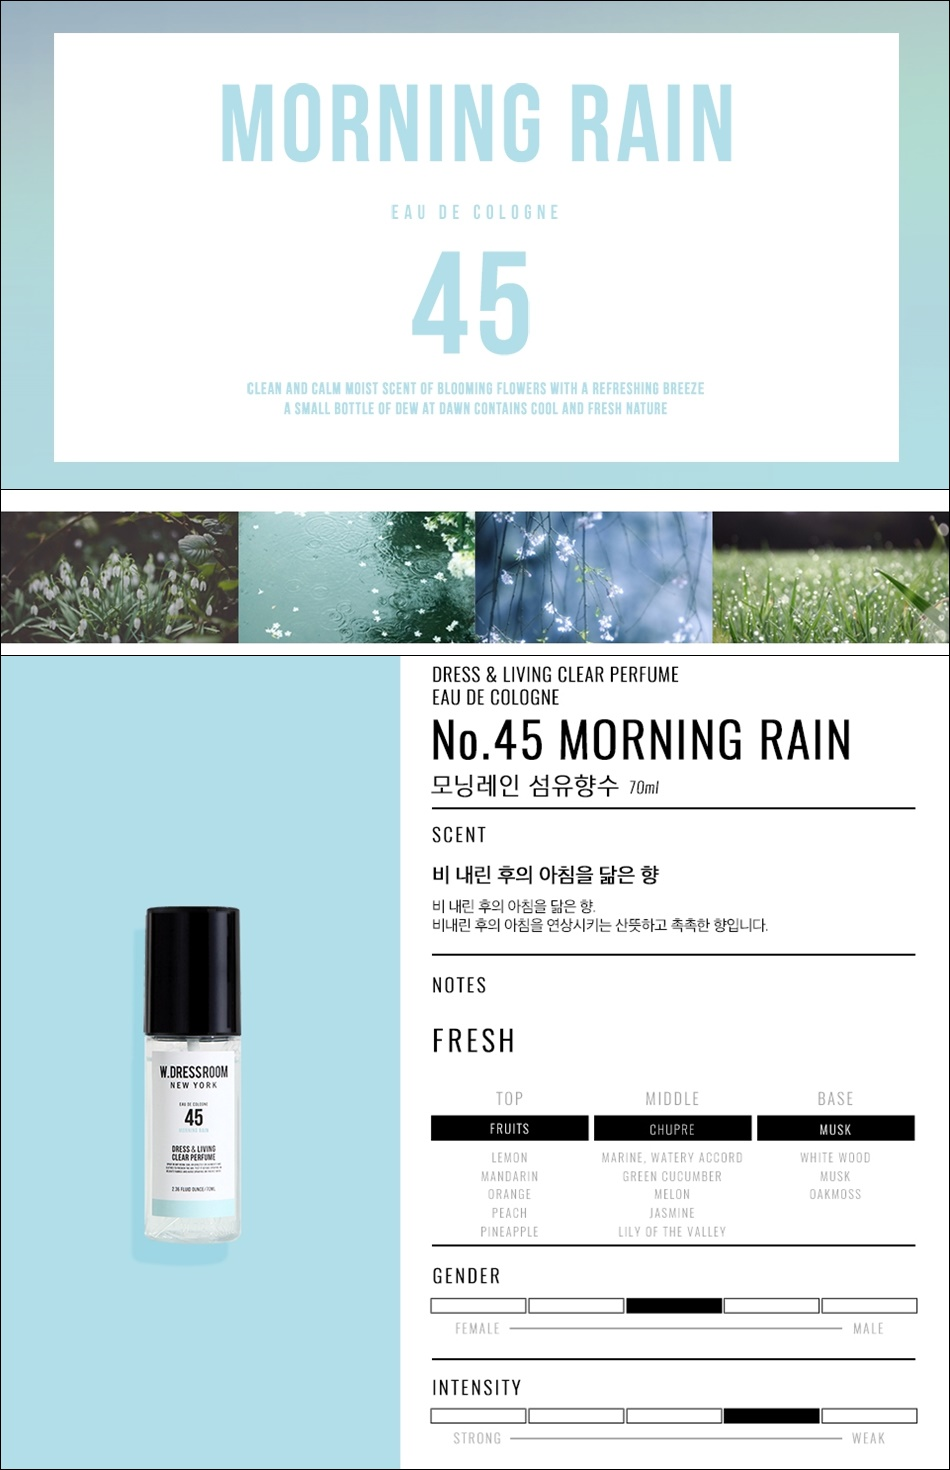 W Dressroom Dress Living Clear Perfume Portable Season 2 Kbeauty New York Drees 70ml Keep Away From High And Low Temperature Direct Sunlight Wdressroom My